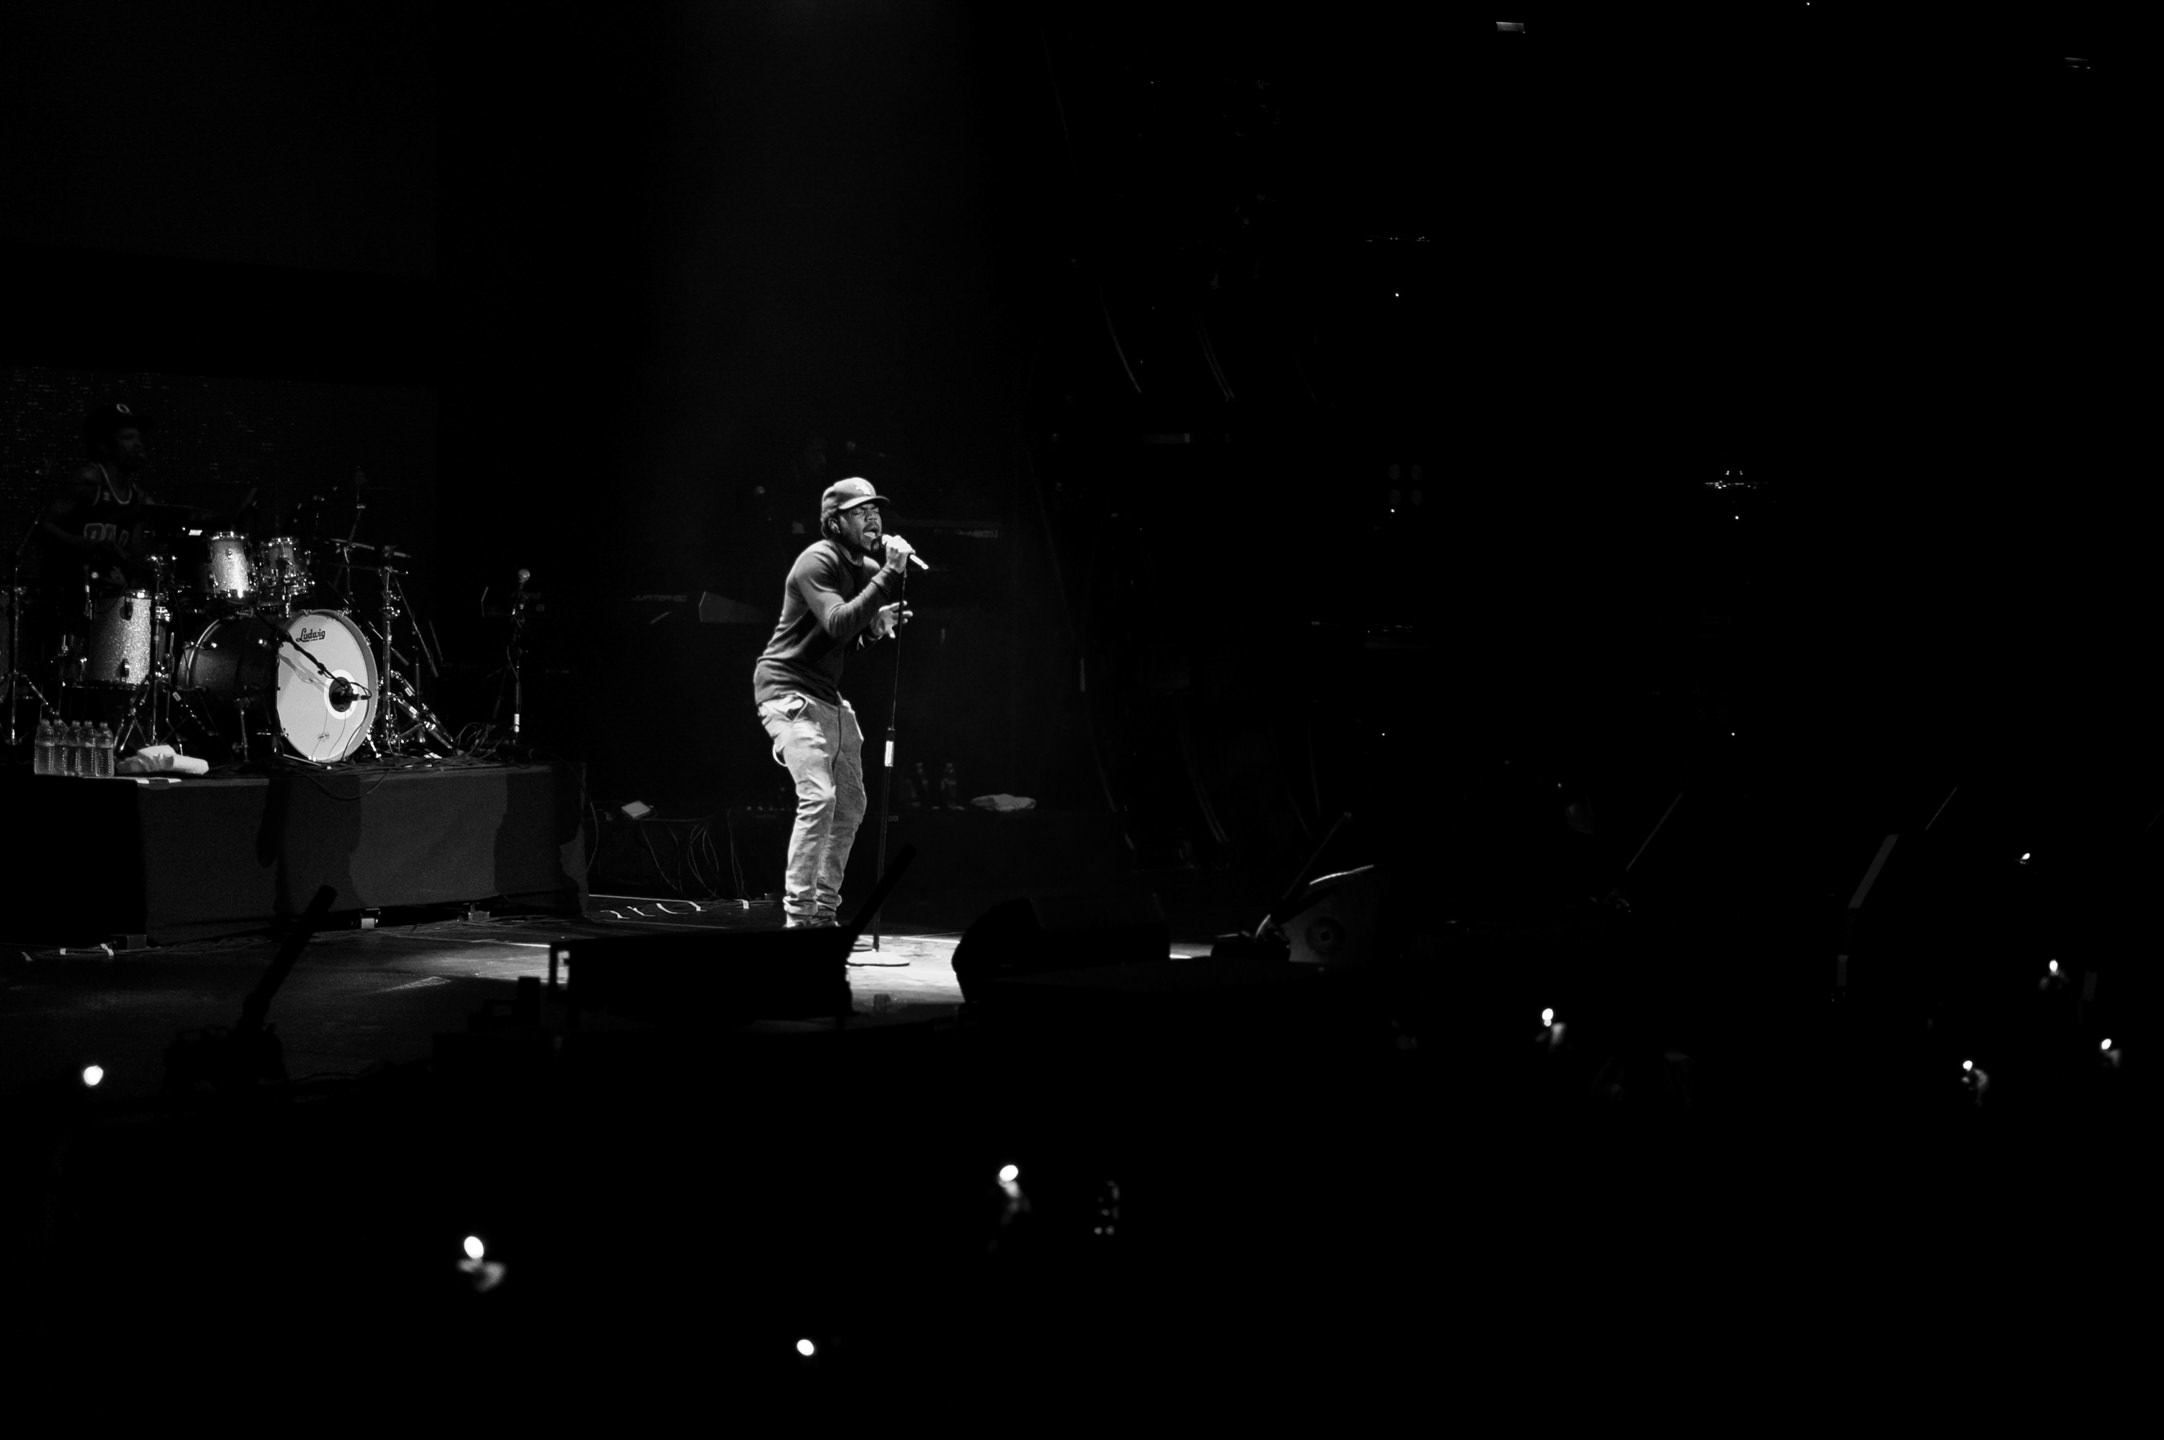 Chance the Rapper at Bumbershoot Music Festival at Key Arena Seattle Center Washington 2015